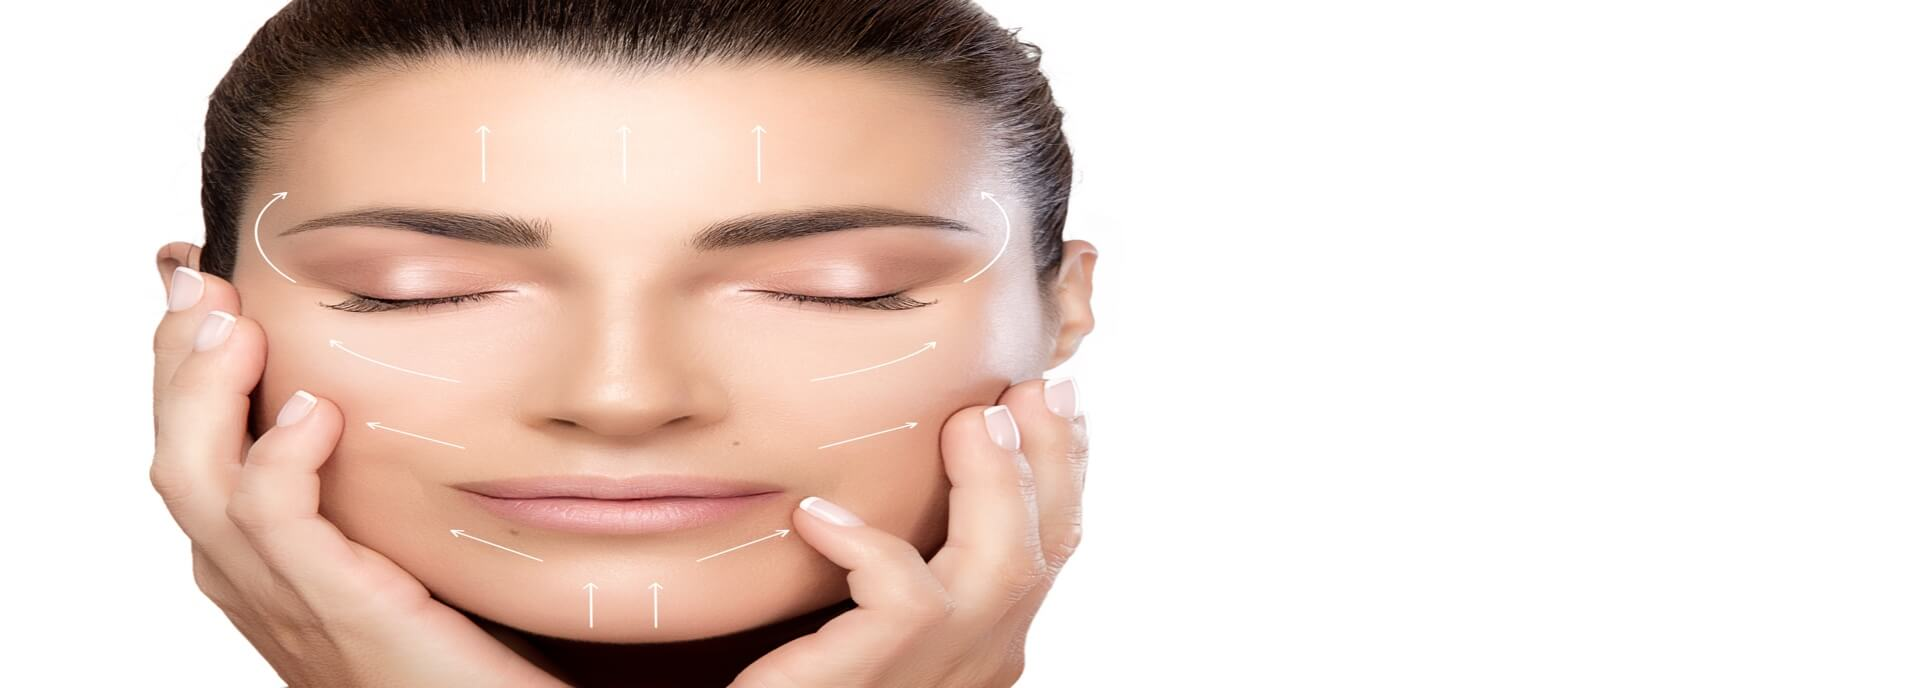 Get Naturopathic Aesthetic Medicine Cosmetic Botox Wrinkle Therapy | Dr. Jiwani Vancouver Burnaby Surrey